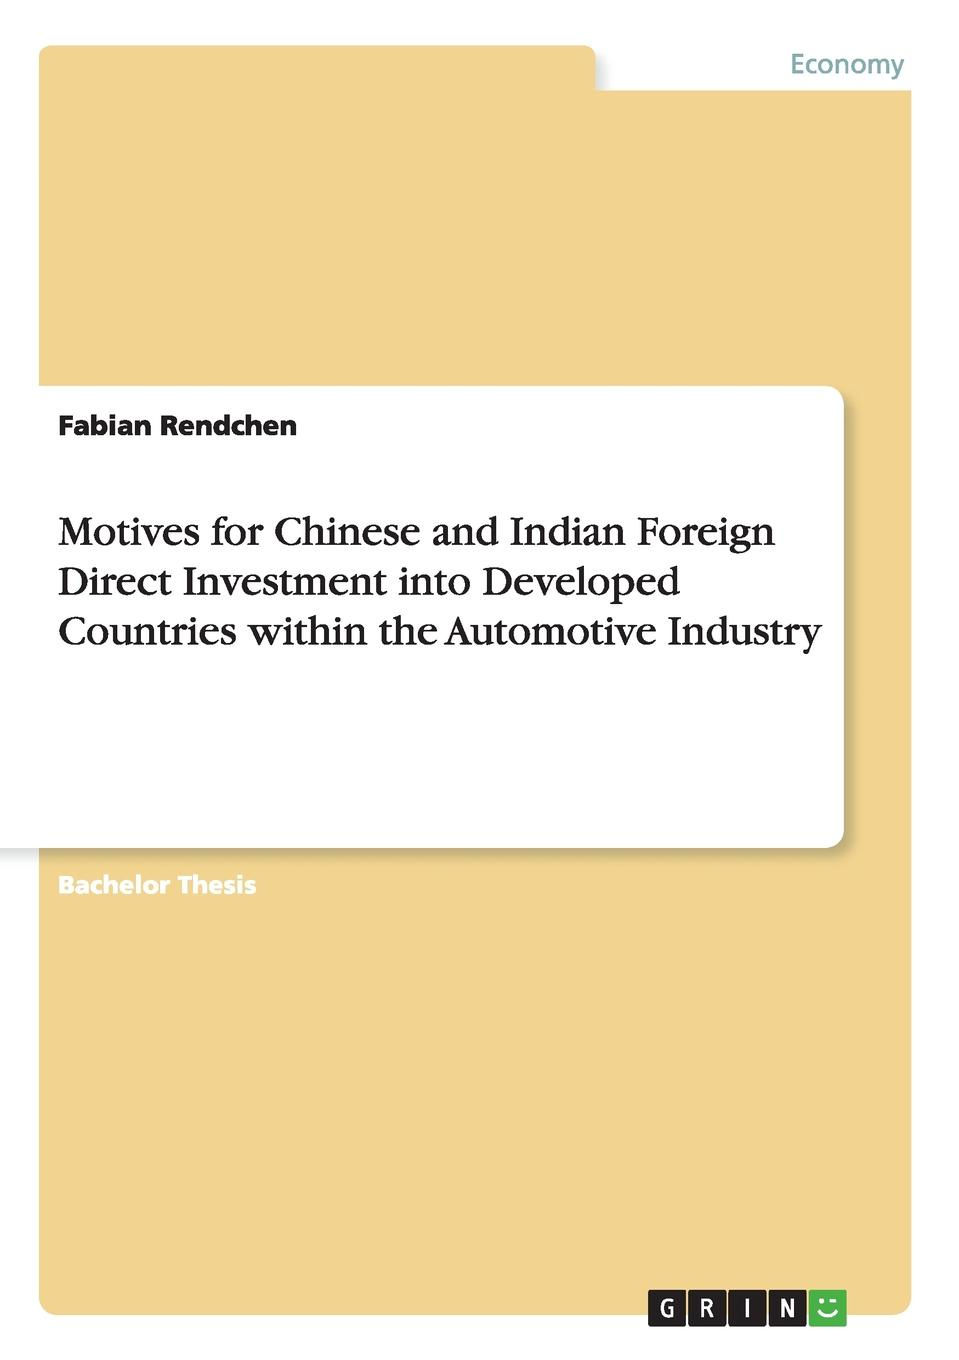 Fabian Rendchen Motives for Chinese and Indian Foreign Direct Investment into Developed Countries within the Automotive Industry halil kiymaz market microstructure in emerging and developed markets price discovery information flows and transaction costs